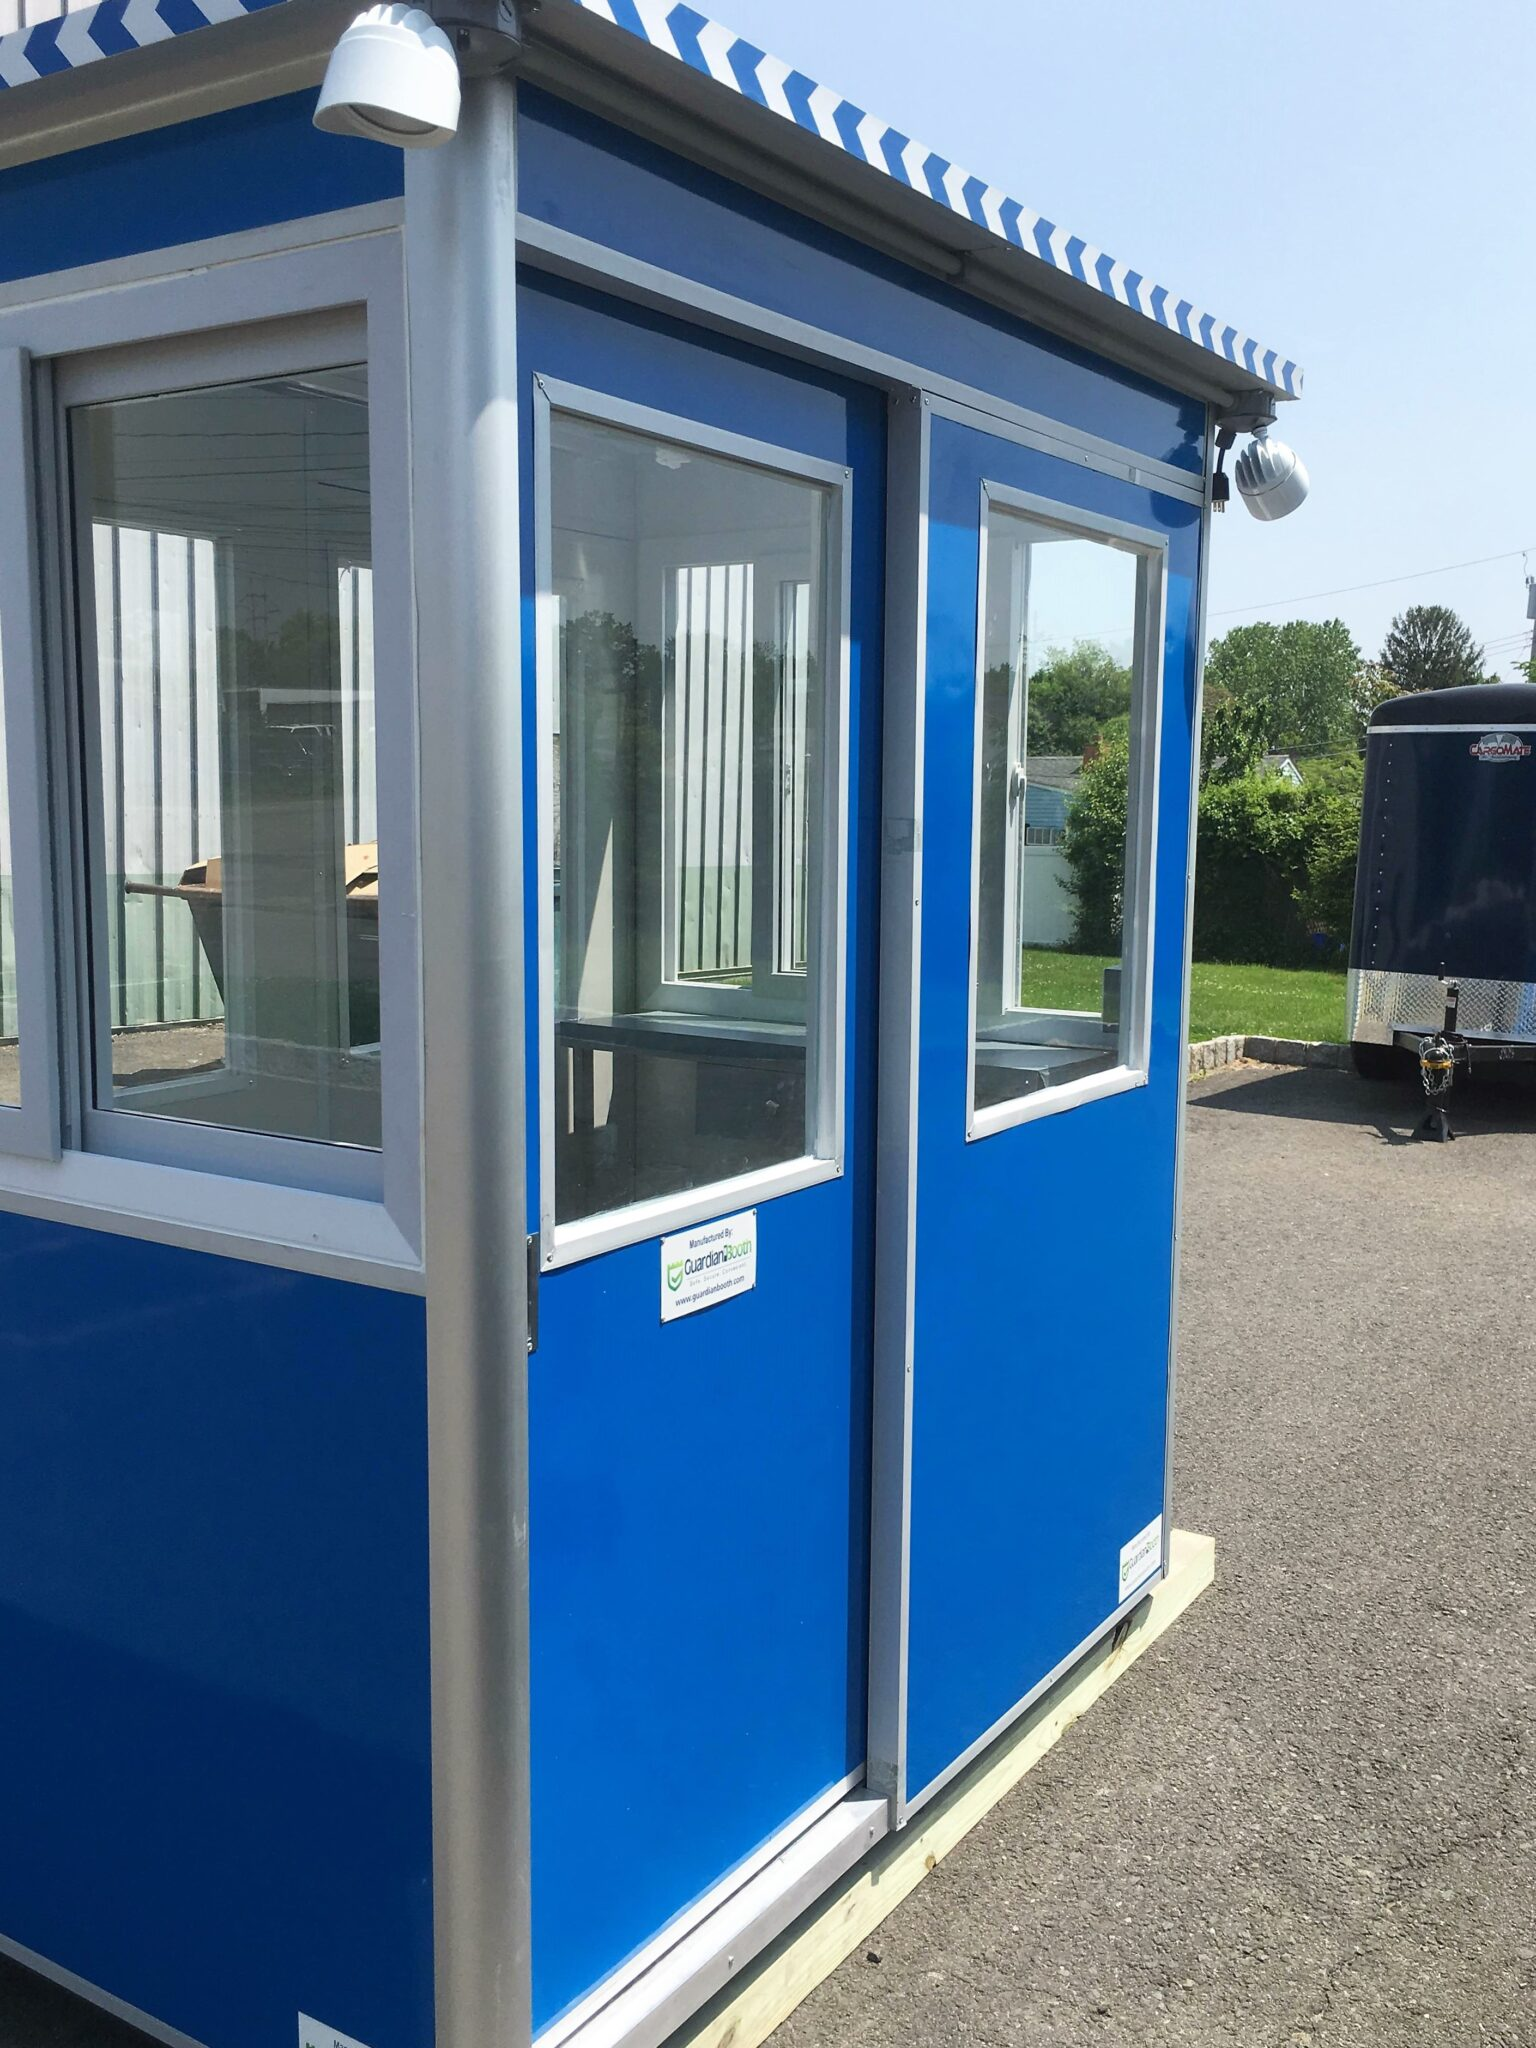 4x6 Entrance Gate Booth in Portland, OR with Sliding door, Outside Spotlights, Panel Box, Fixed Windows, Sliding Windows, and Built-in AC